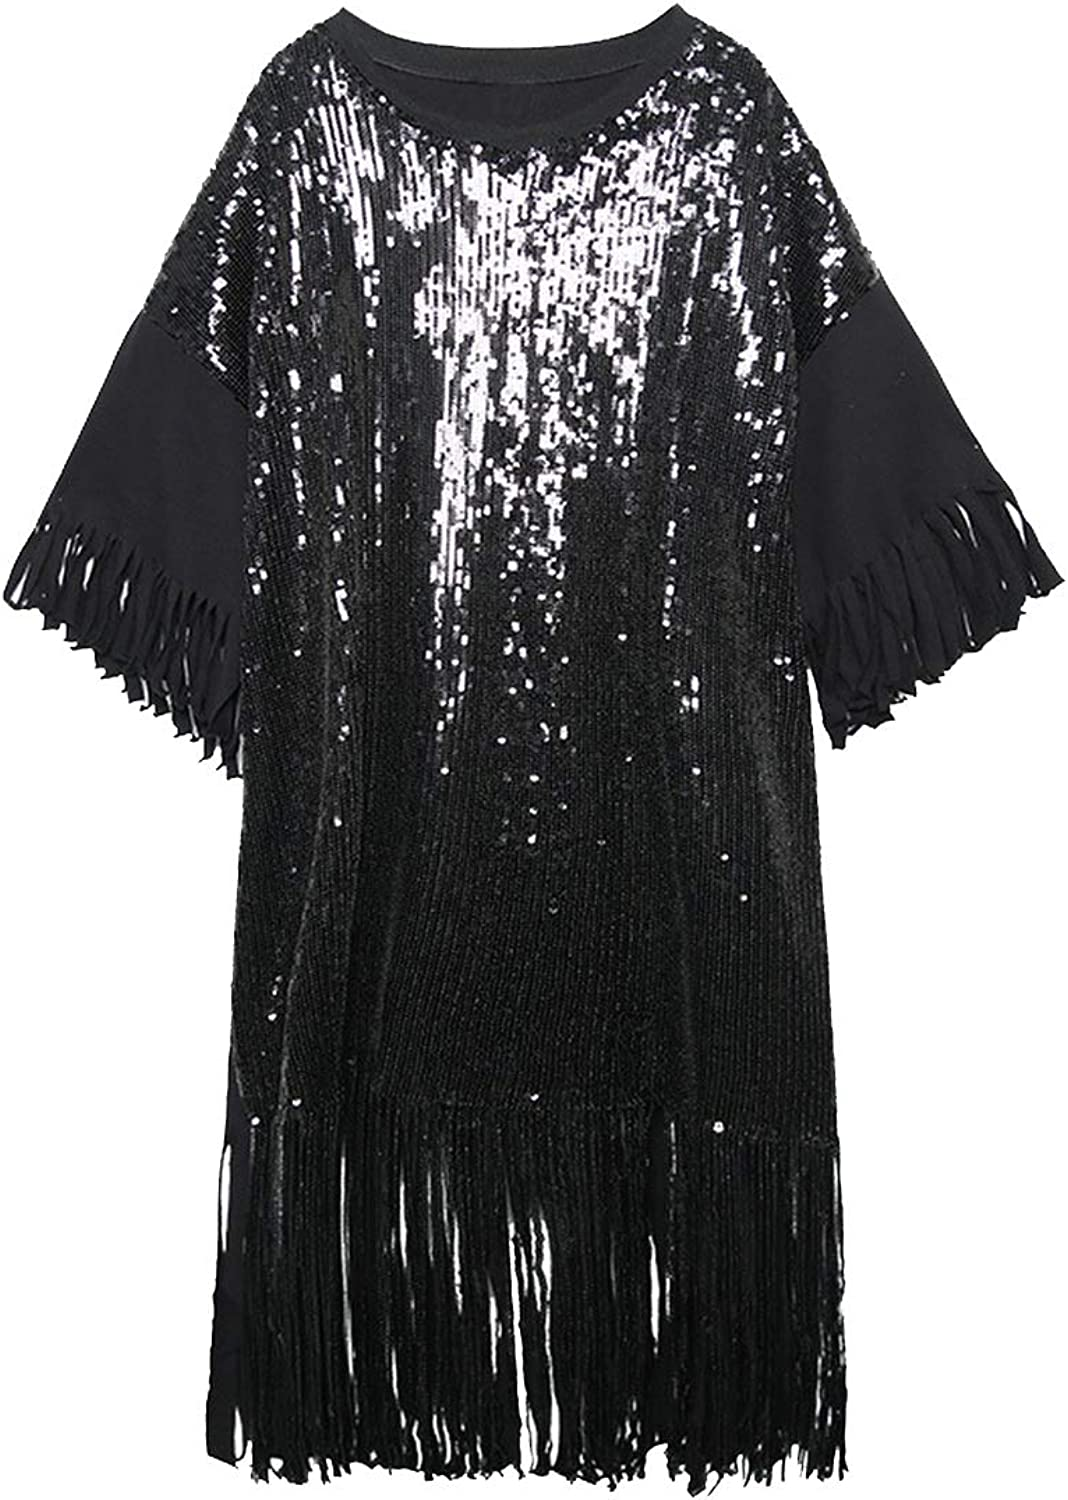 CollocationOnline Round Neck ThreeQuarter Sleeve Black Sequins ShiningTassels Big Size Dress Women